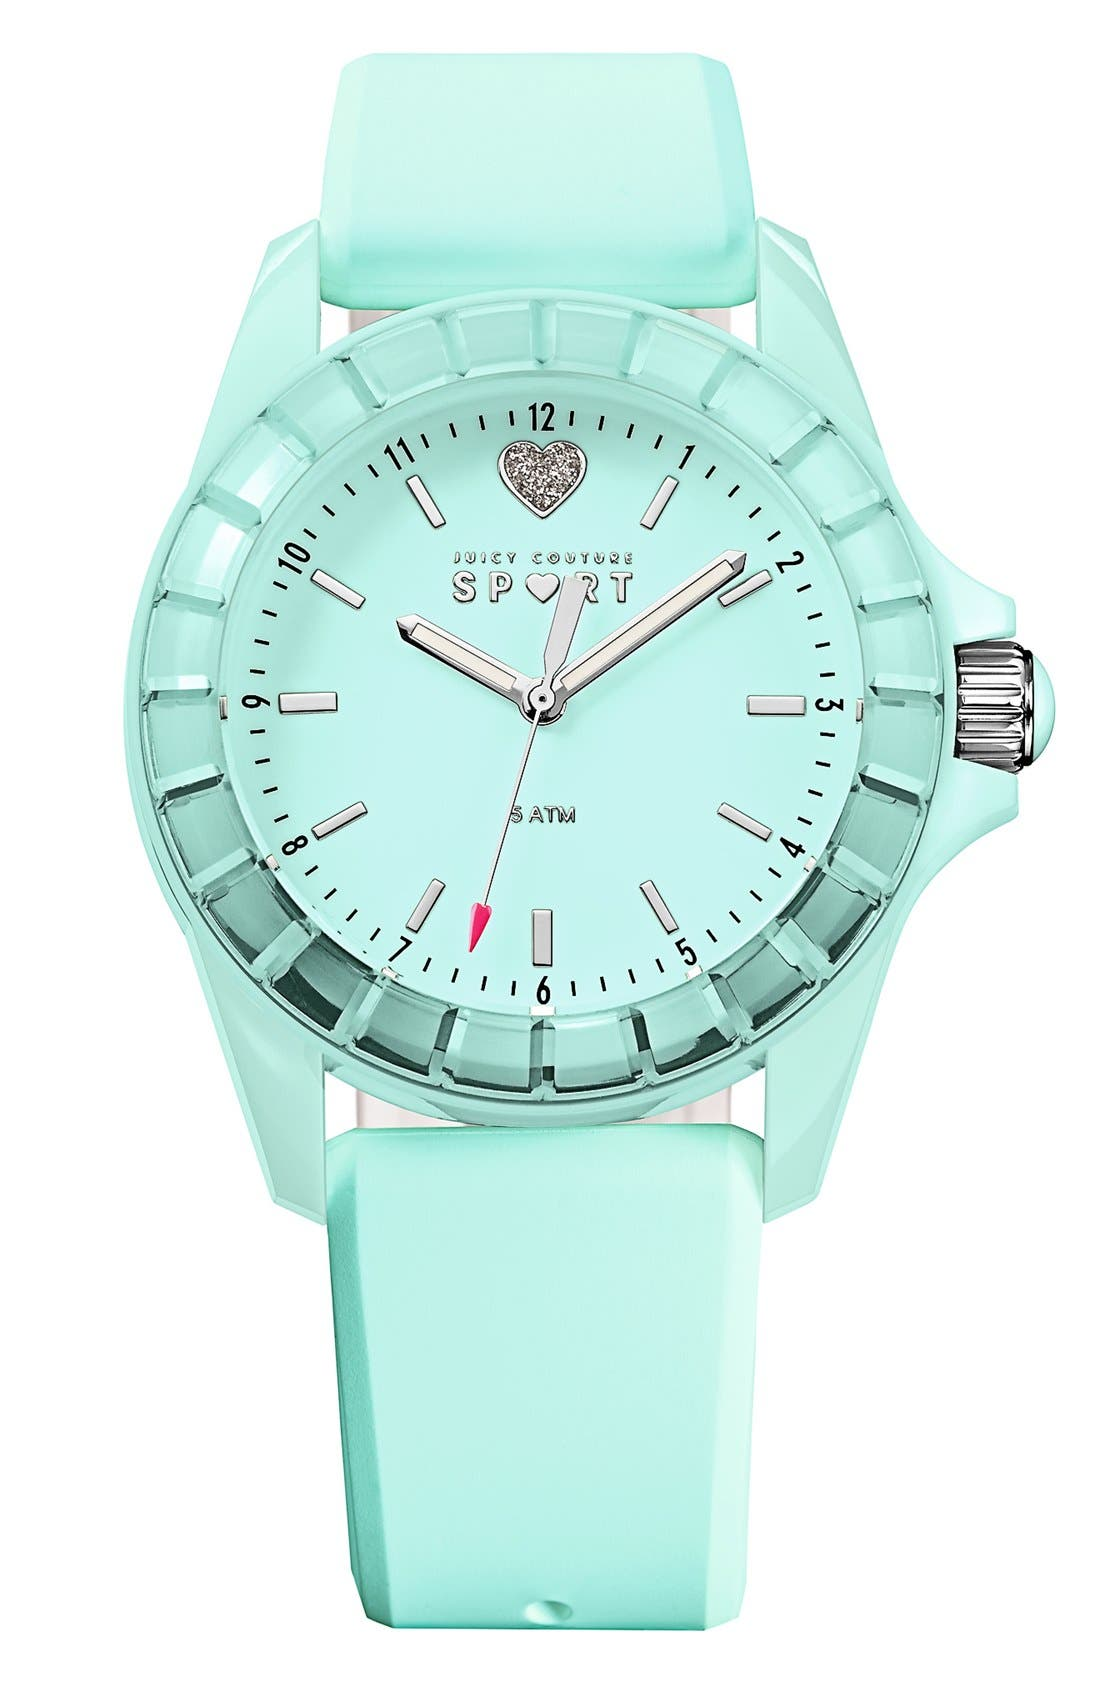 Alternate Image 1 Selected - Juicy Couture 'Sport' Crystal Bezel Silicone Strap Watch, 40mm